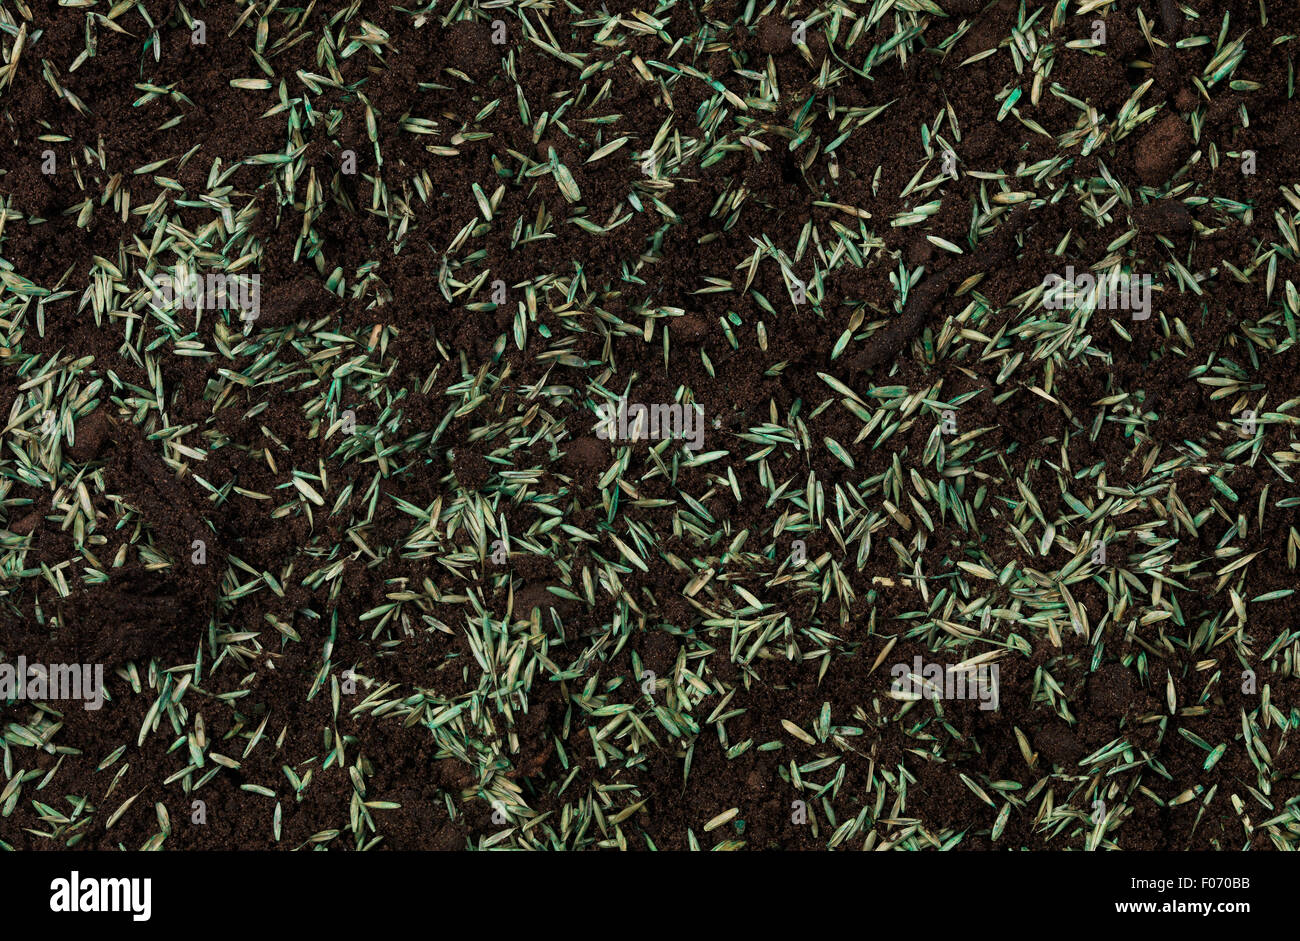 Grass Seed in top soil - Stock Image